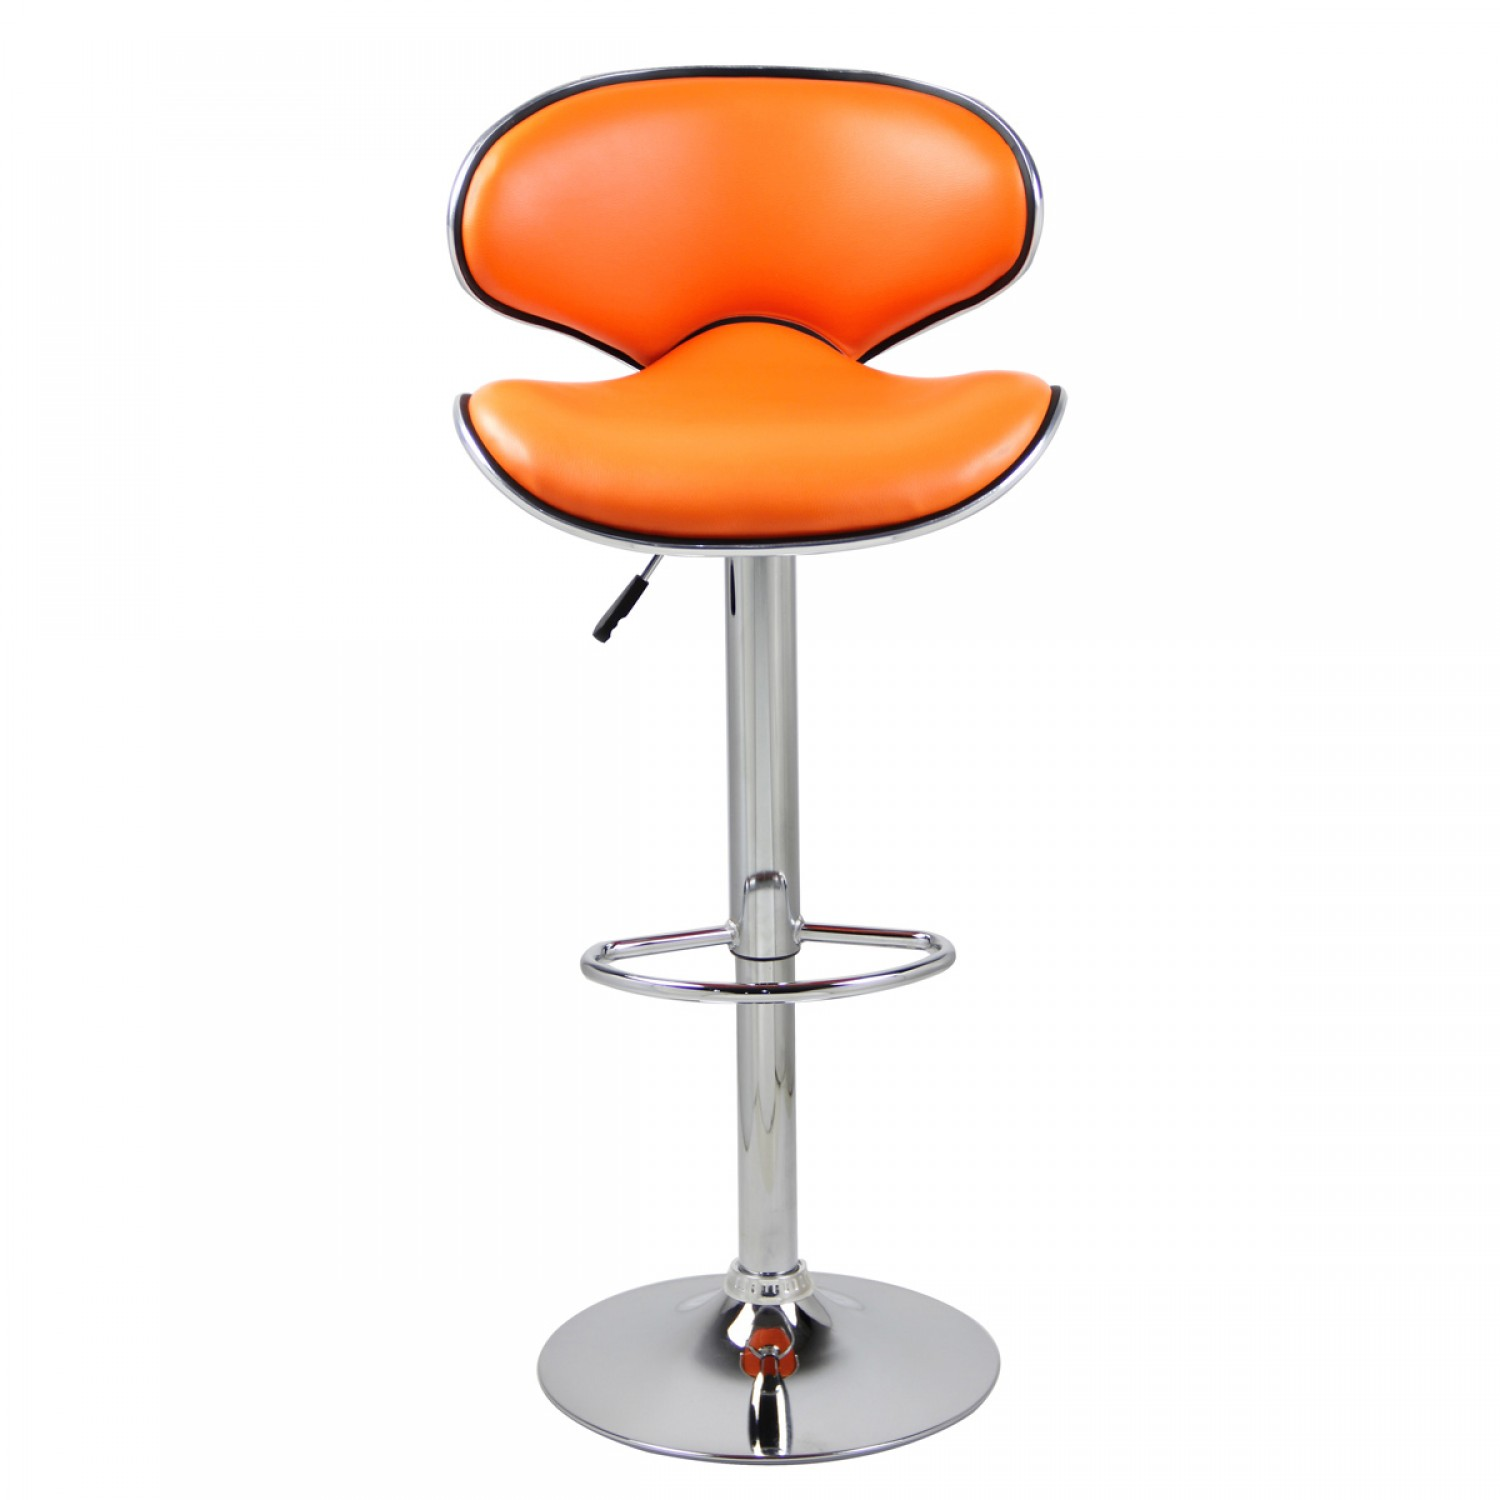 tabouret de bar pop orange lot de 2 koya design. Black Bedroom Furniture Sets. Home Design Ideas